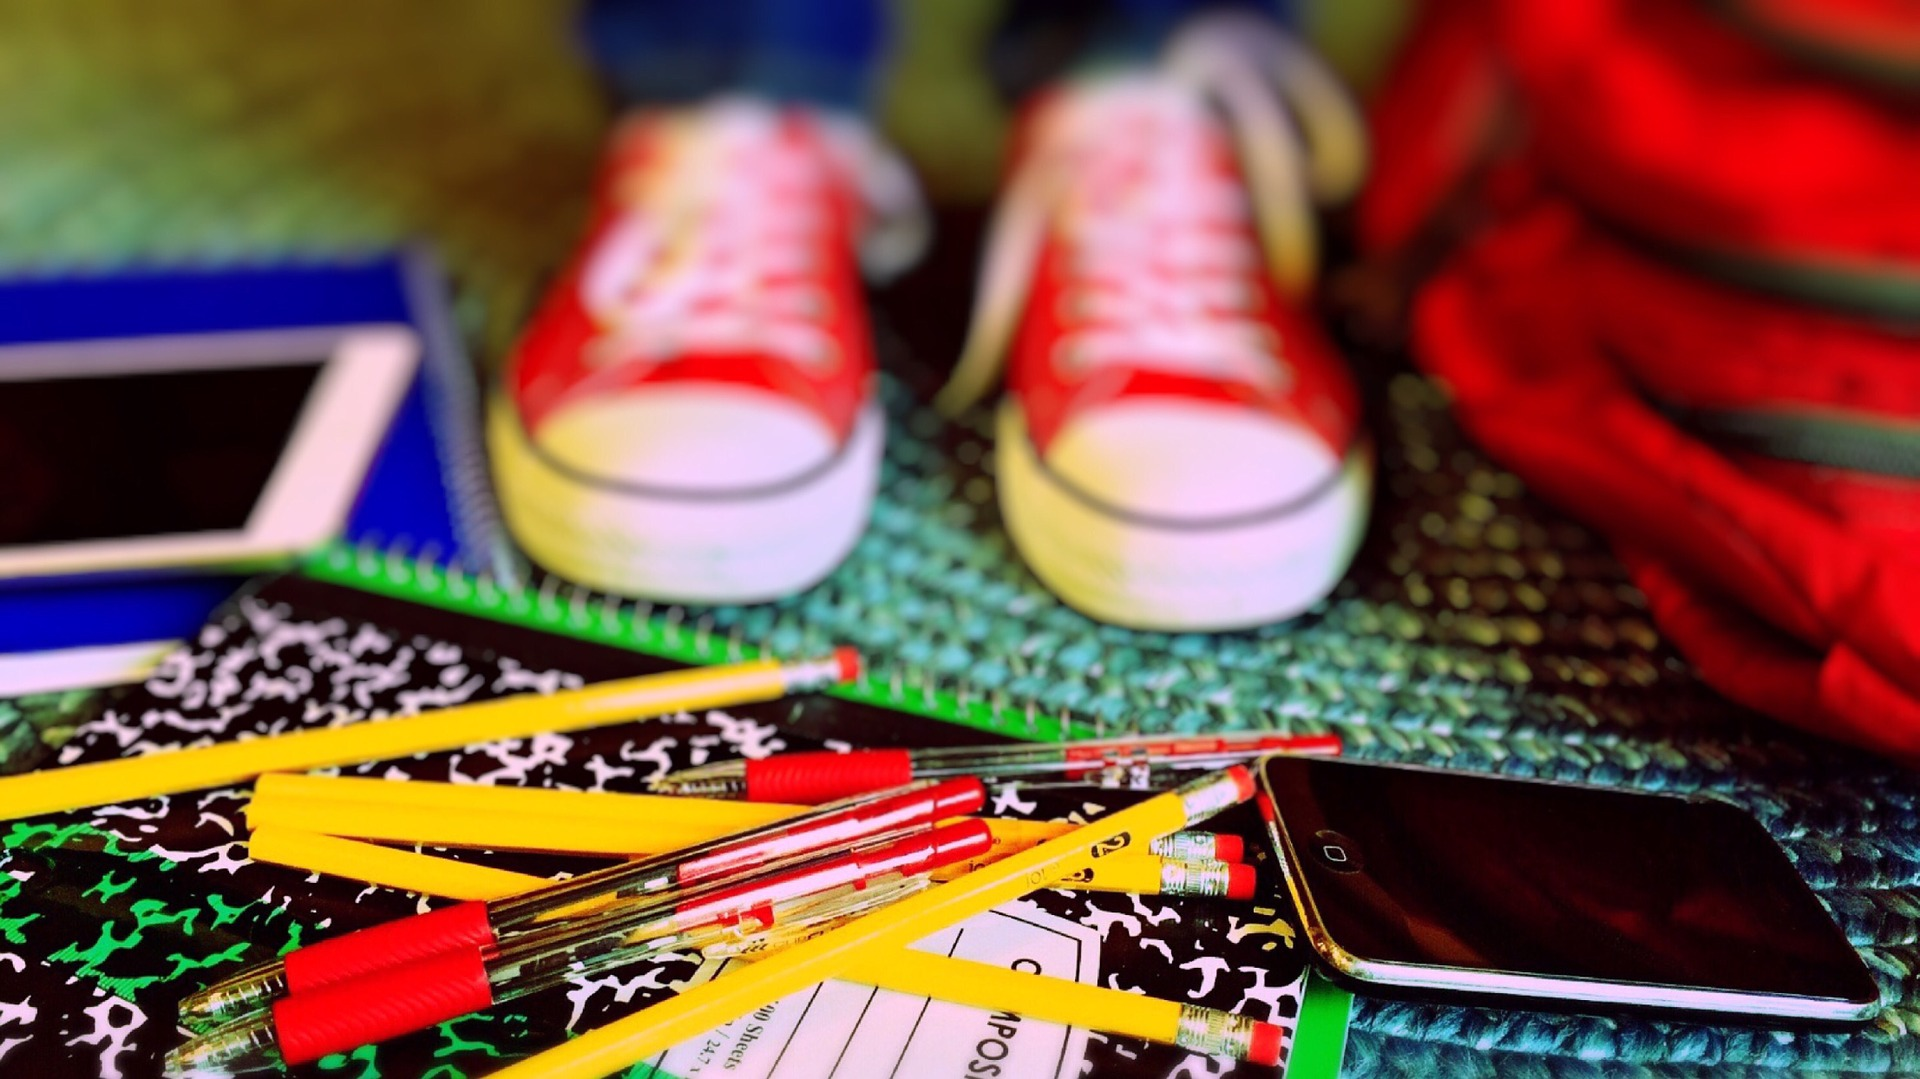 rentree_scolaire_fournitures_scolaires_back_to_school